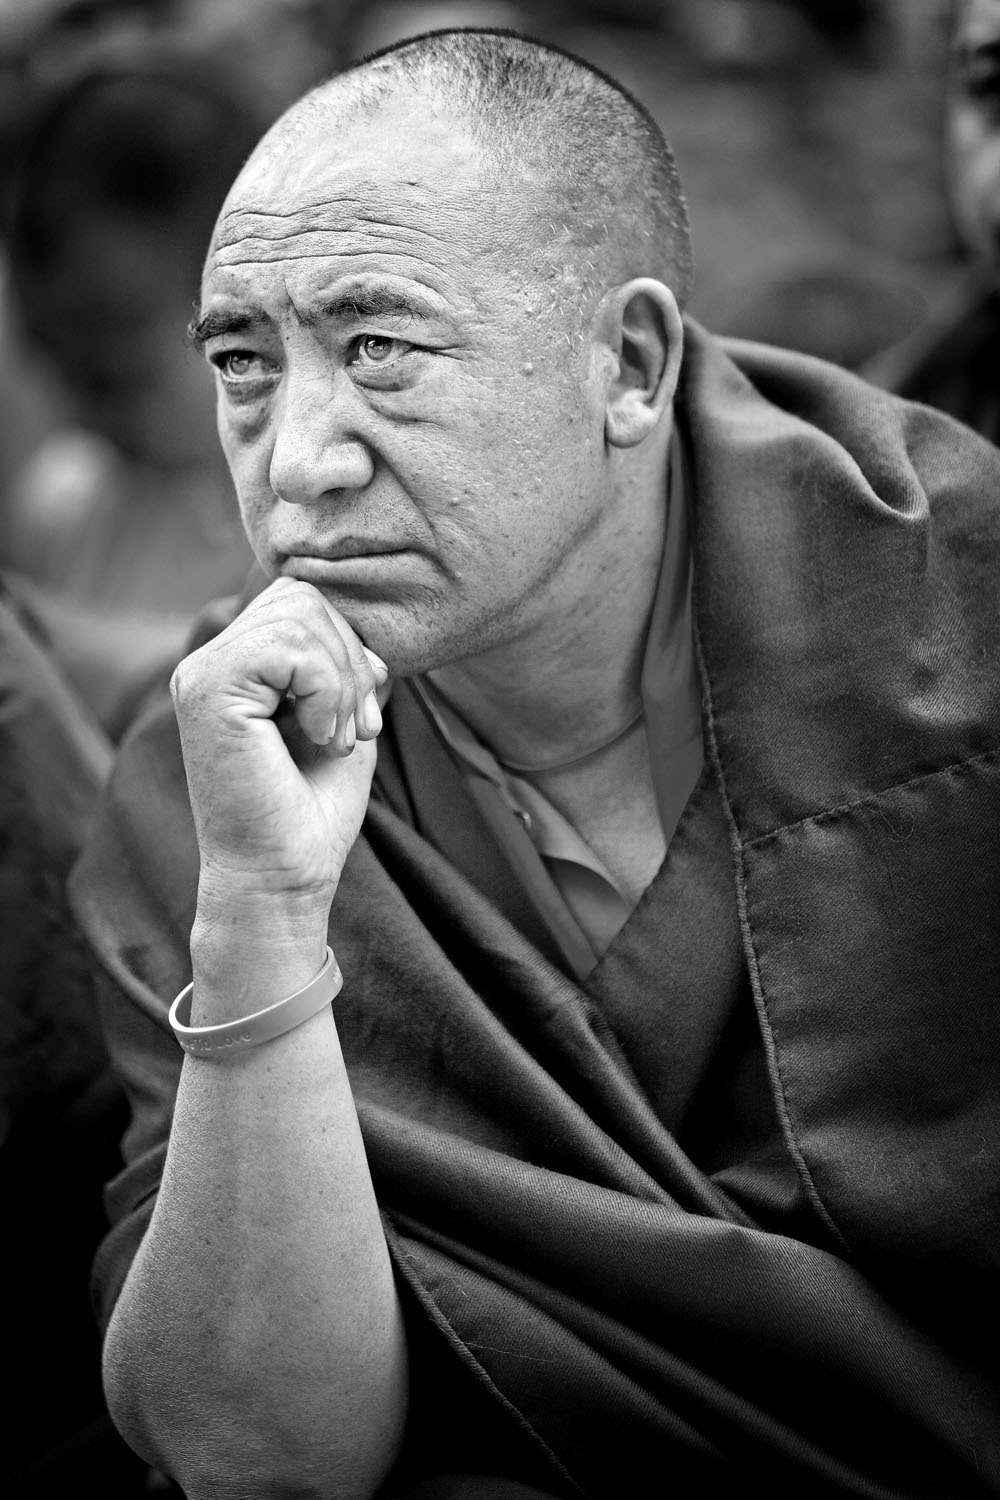 Monk, Hemis Gompa, Ladakh, India